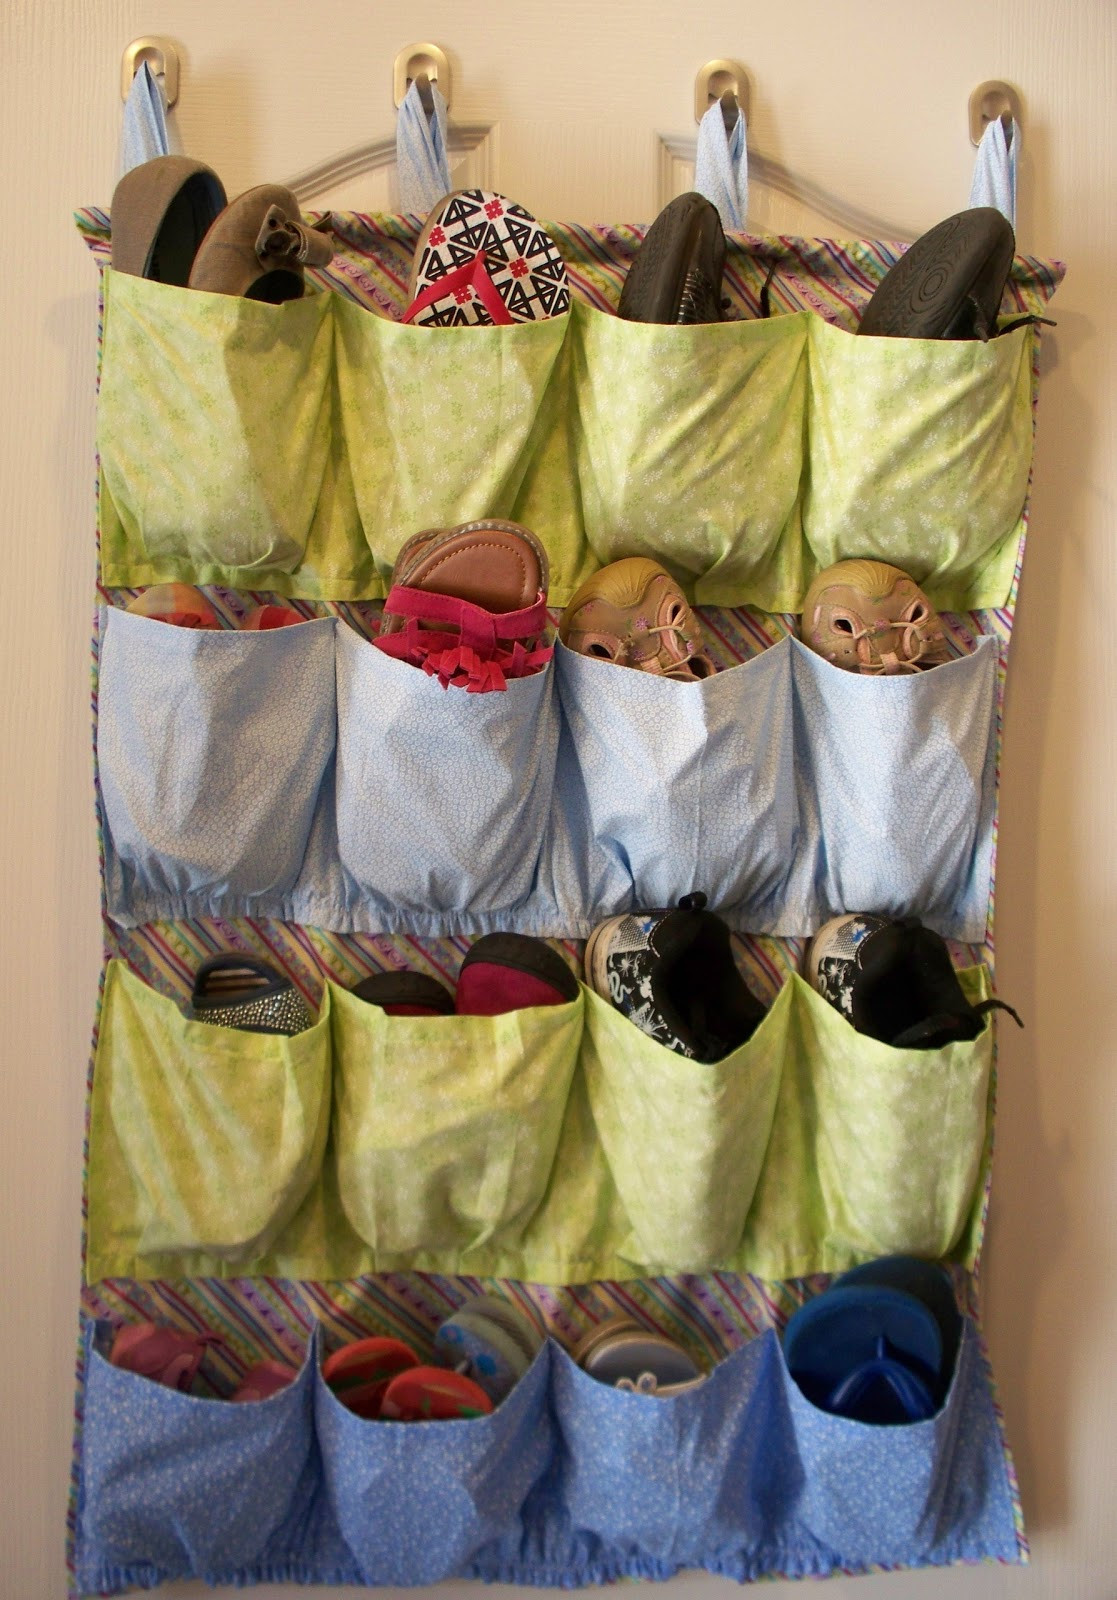 Shoes Organizer DIY  Sew It Yourself Shoe Organizer Adventures of a DIY Mom